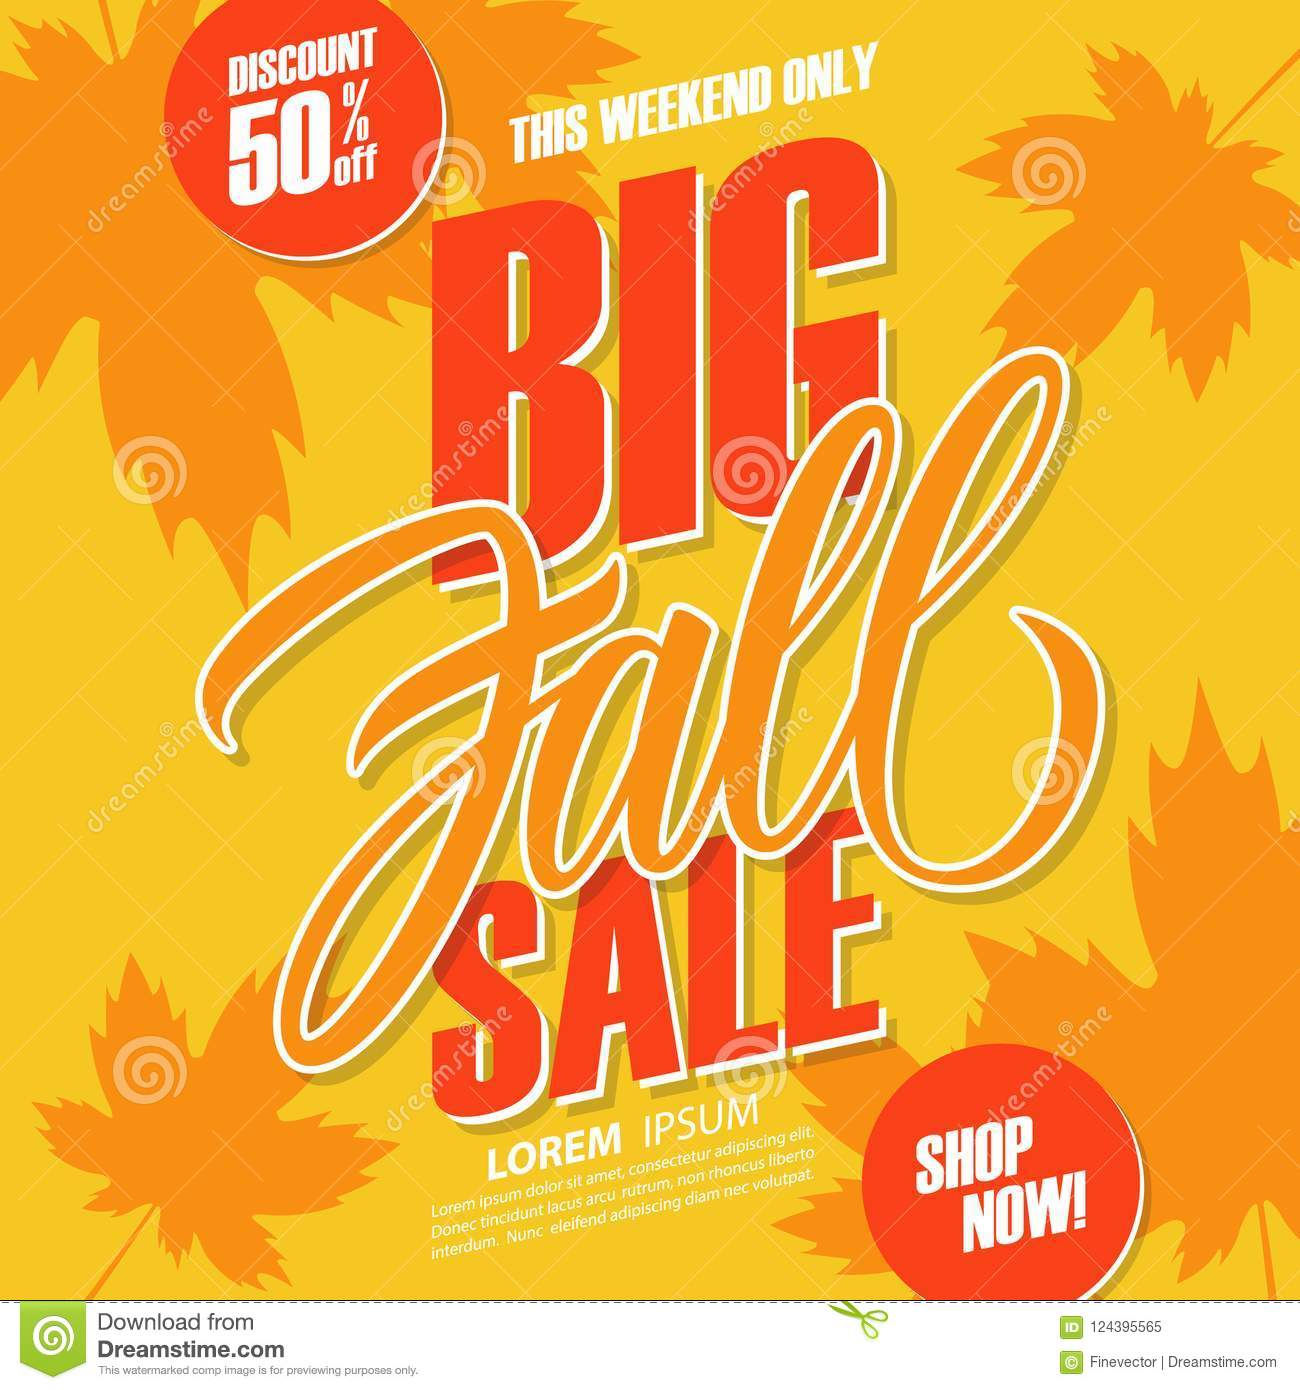 Big Sales This Weekend: Big Fall Sale. This Weekend Special Offer Background With